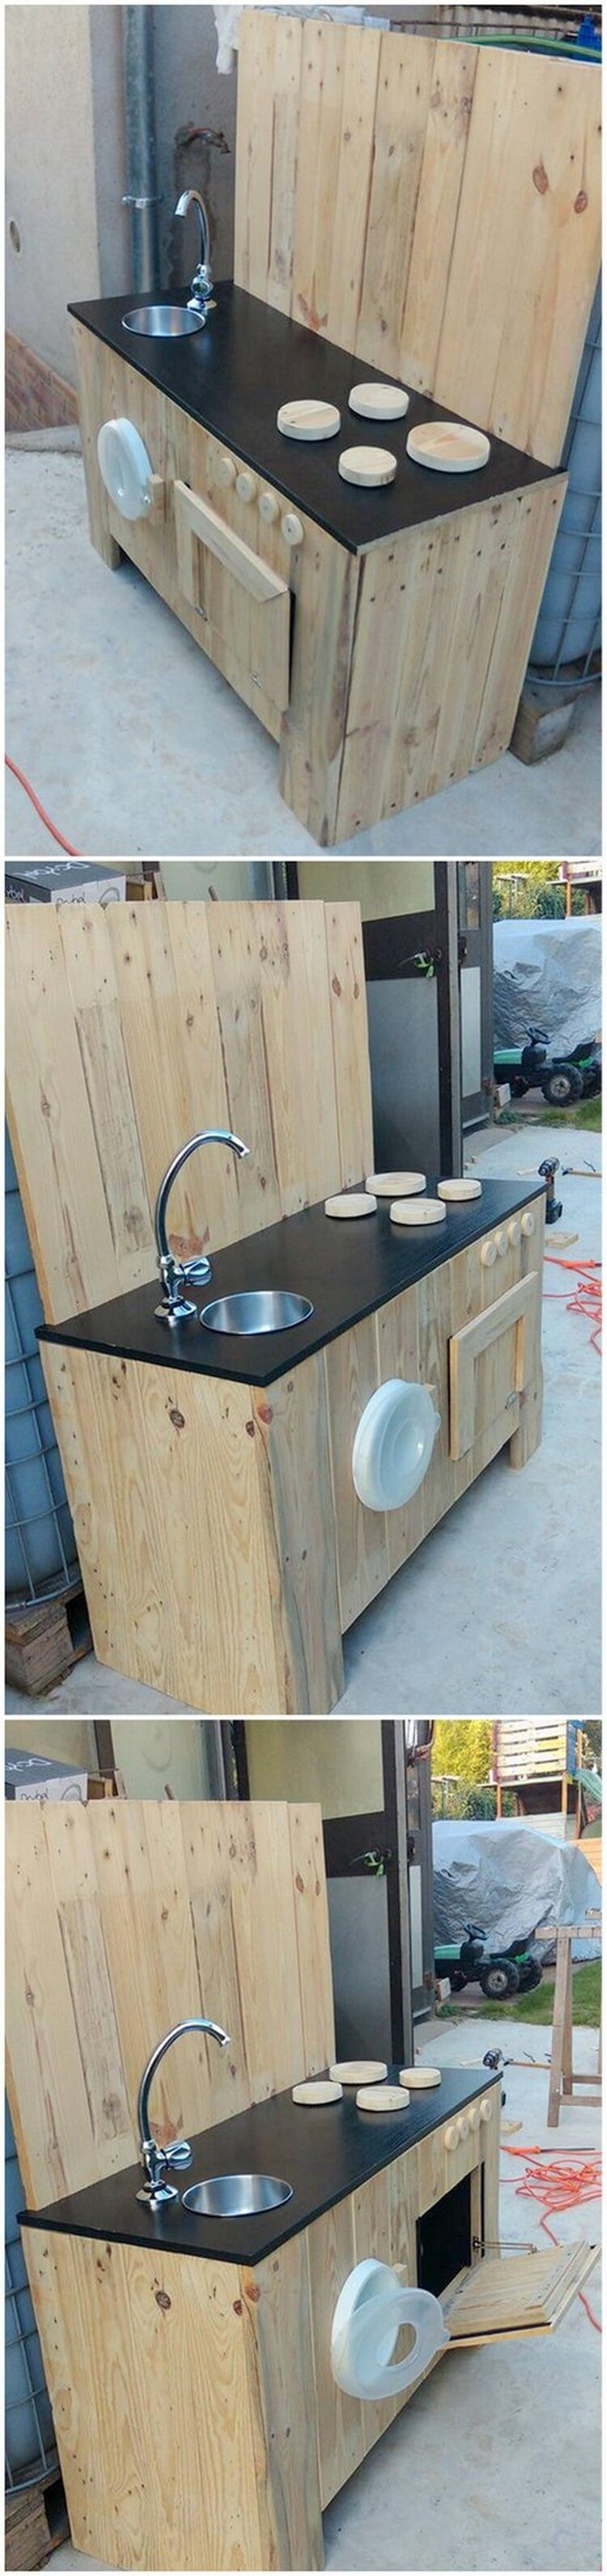 Pallet Mud Kitchen with Sink (2)